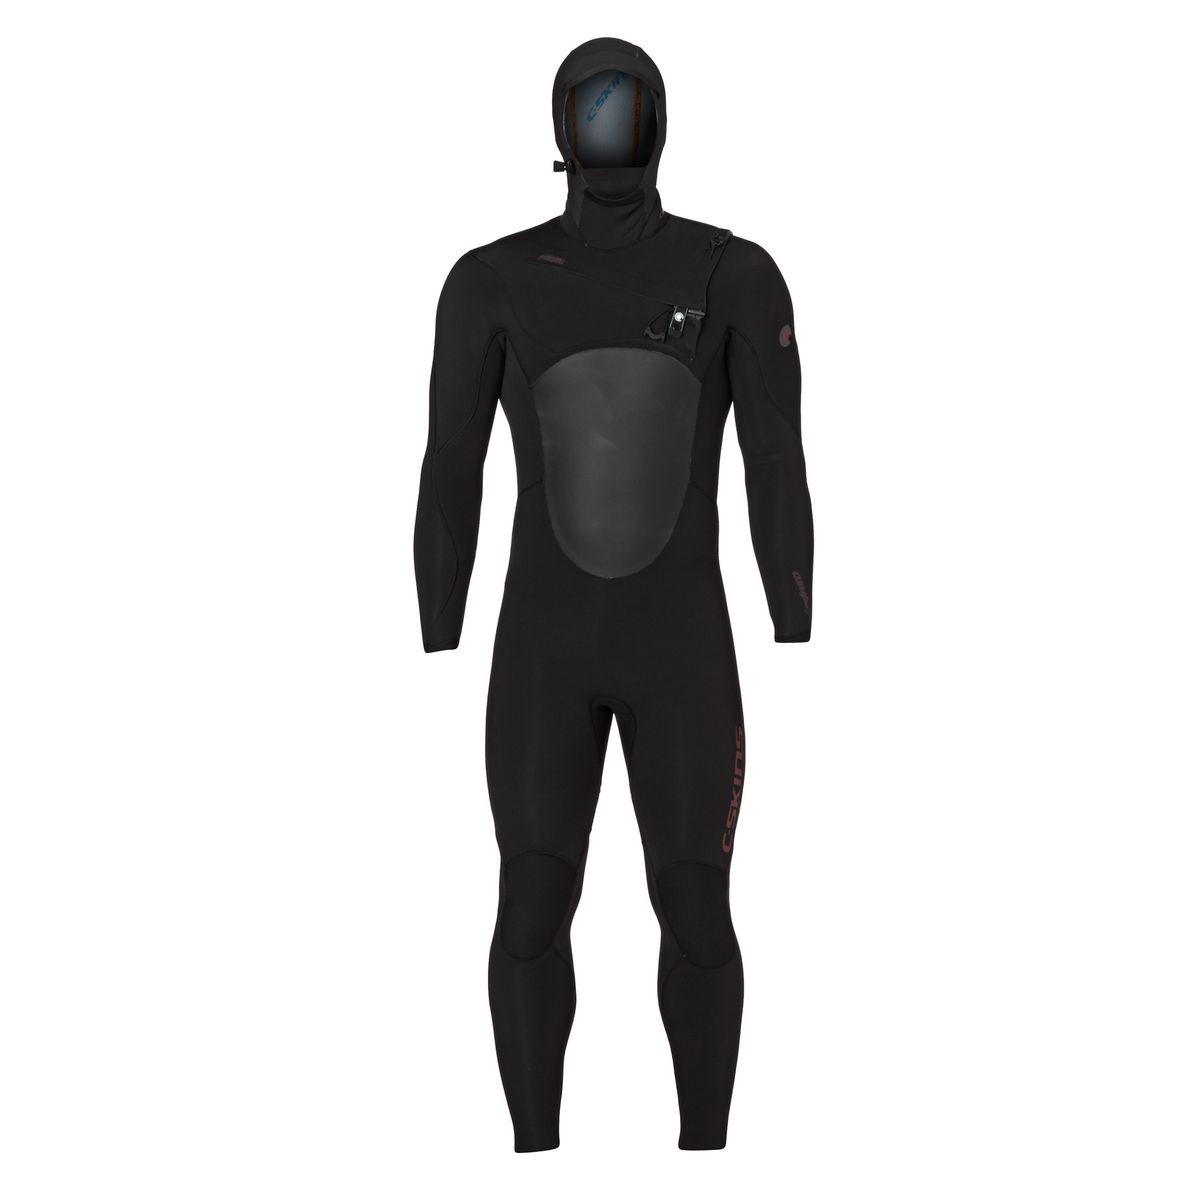 C-Skins Wired 5/4mm 2017 Hooded Chest Zip Wetsuit - Black/ Rust